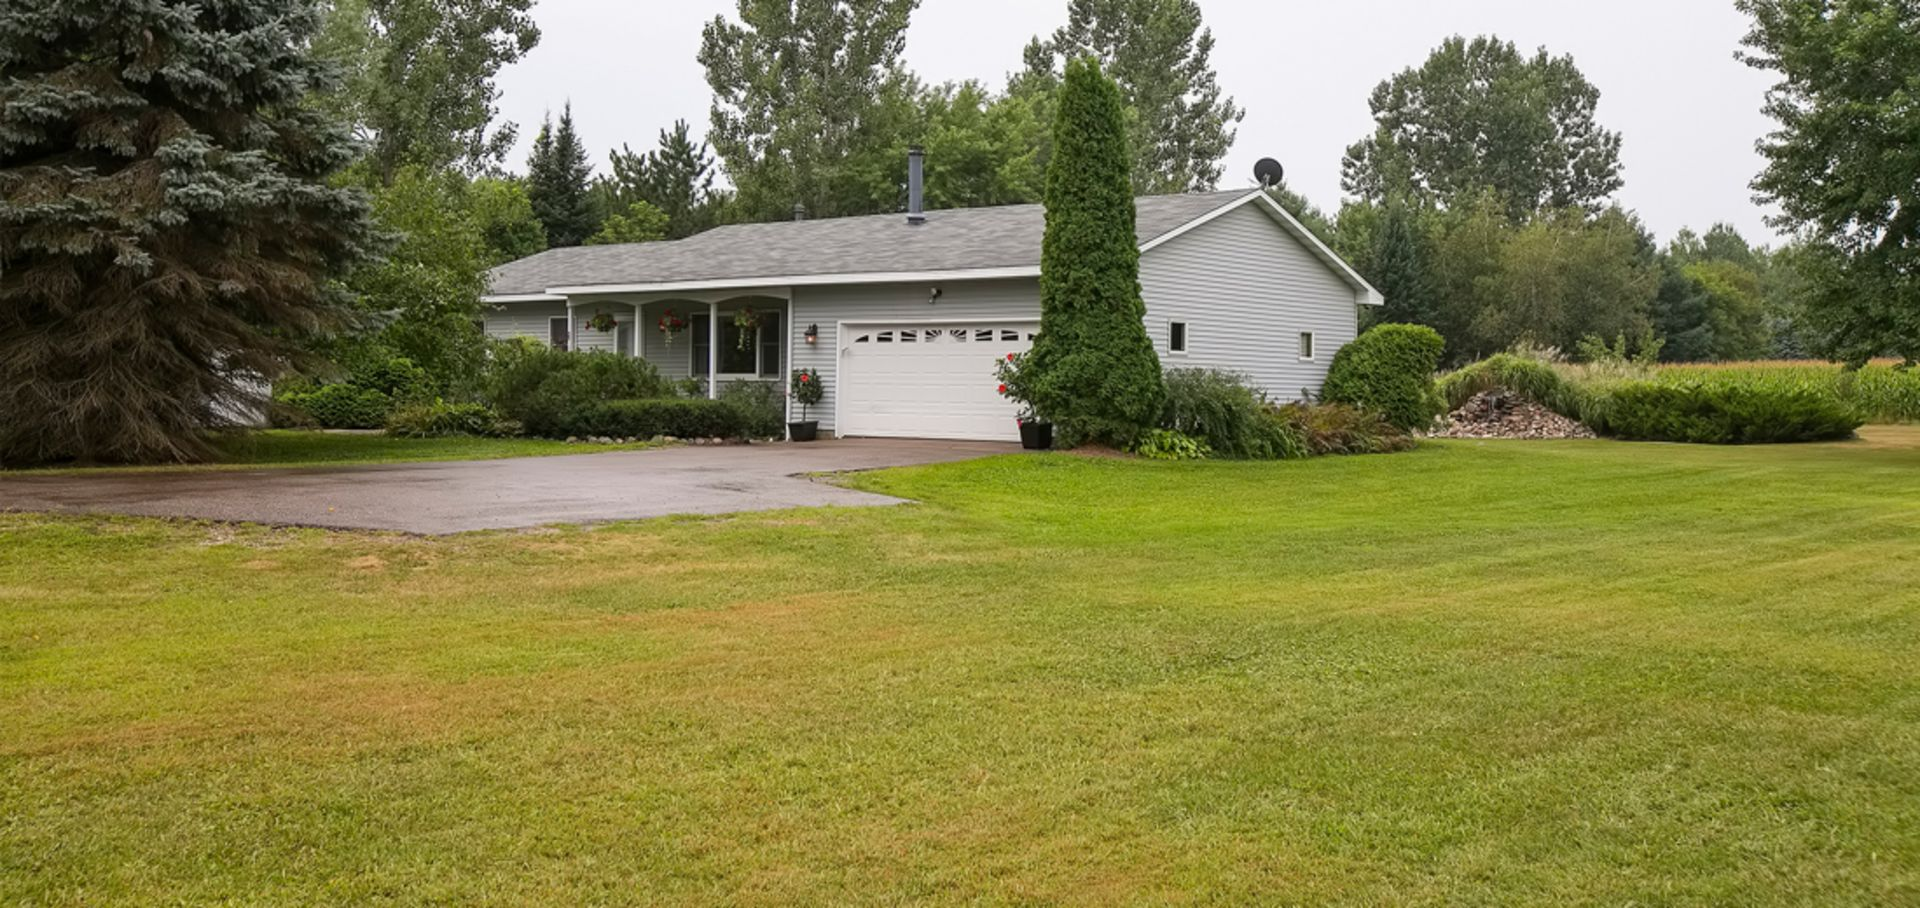 Must-see 10 Acre Property in Lake Elmo